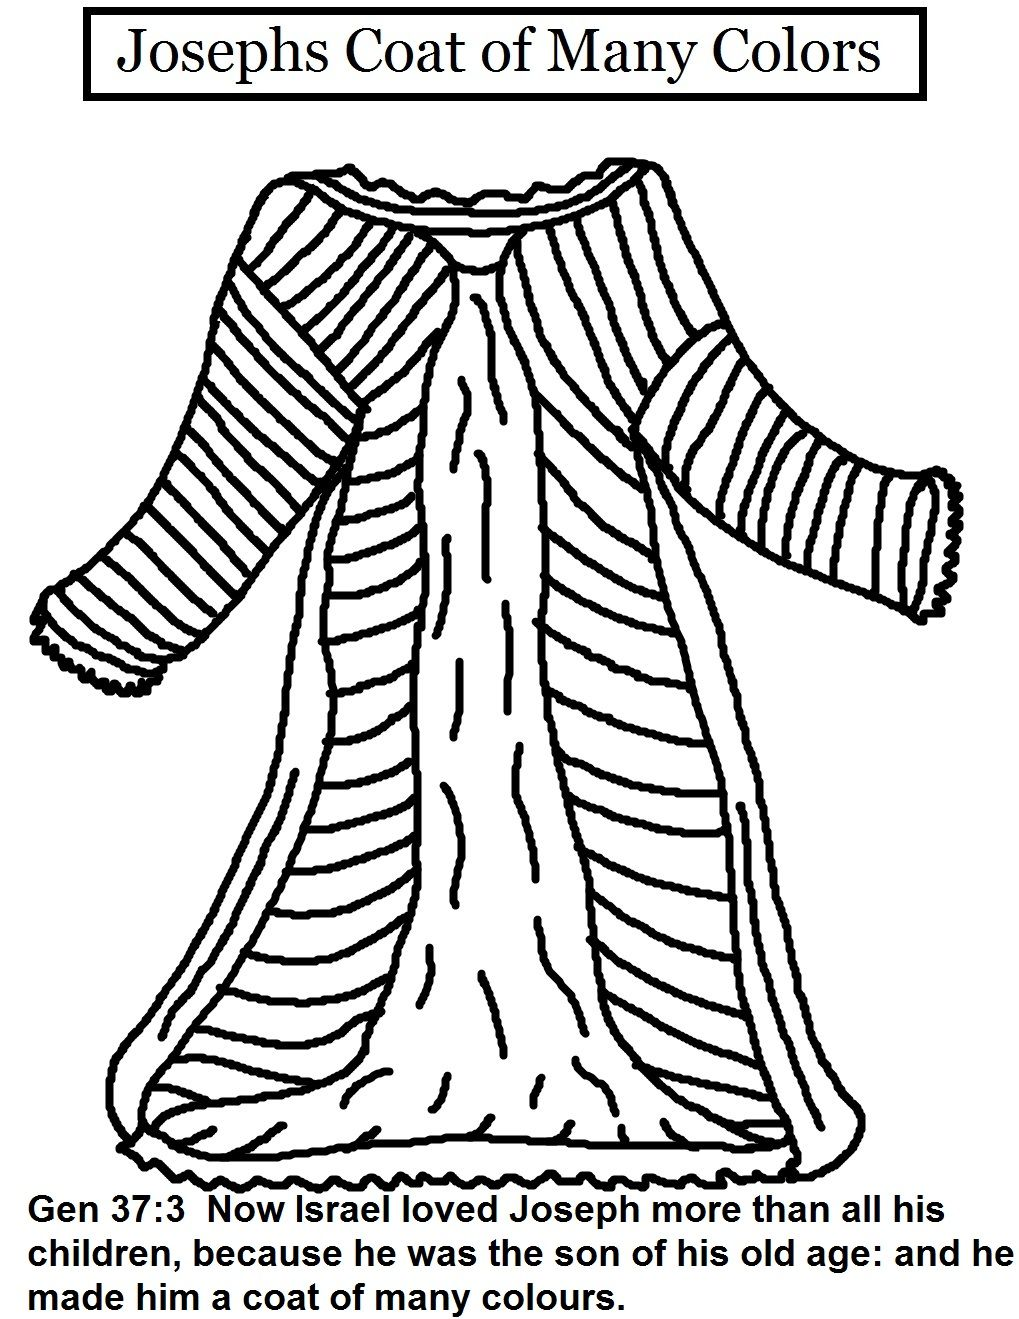 Sunday School Coloring Pages Joseph. Coat of Many Colors  coloring sheet week 6 Joseph s